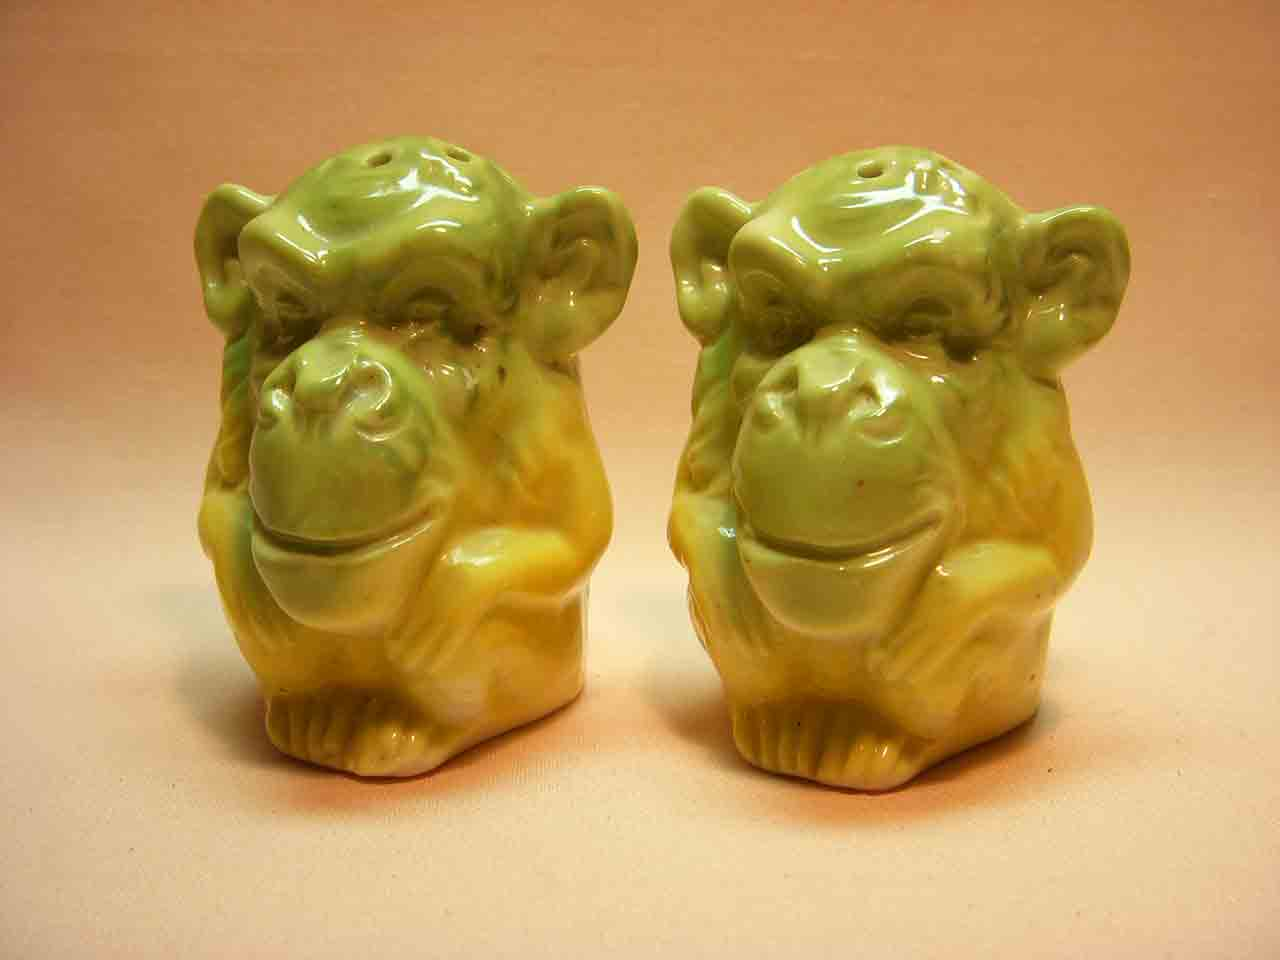 Conta & Boehme Germany monkeys salt and pepper shakers